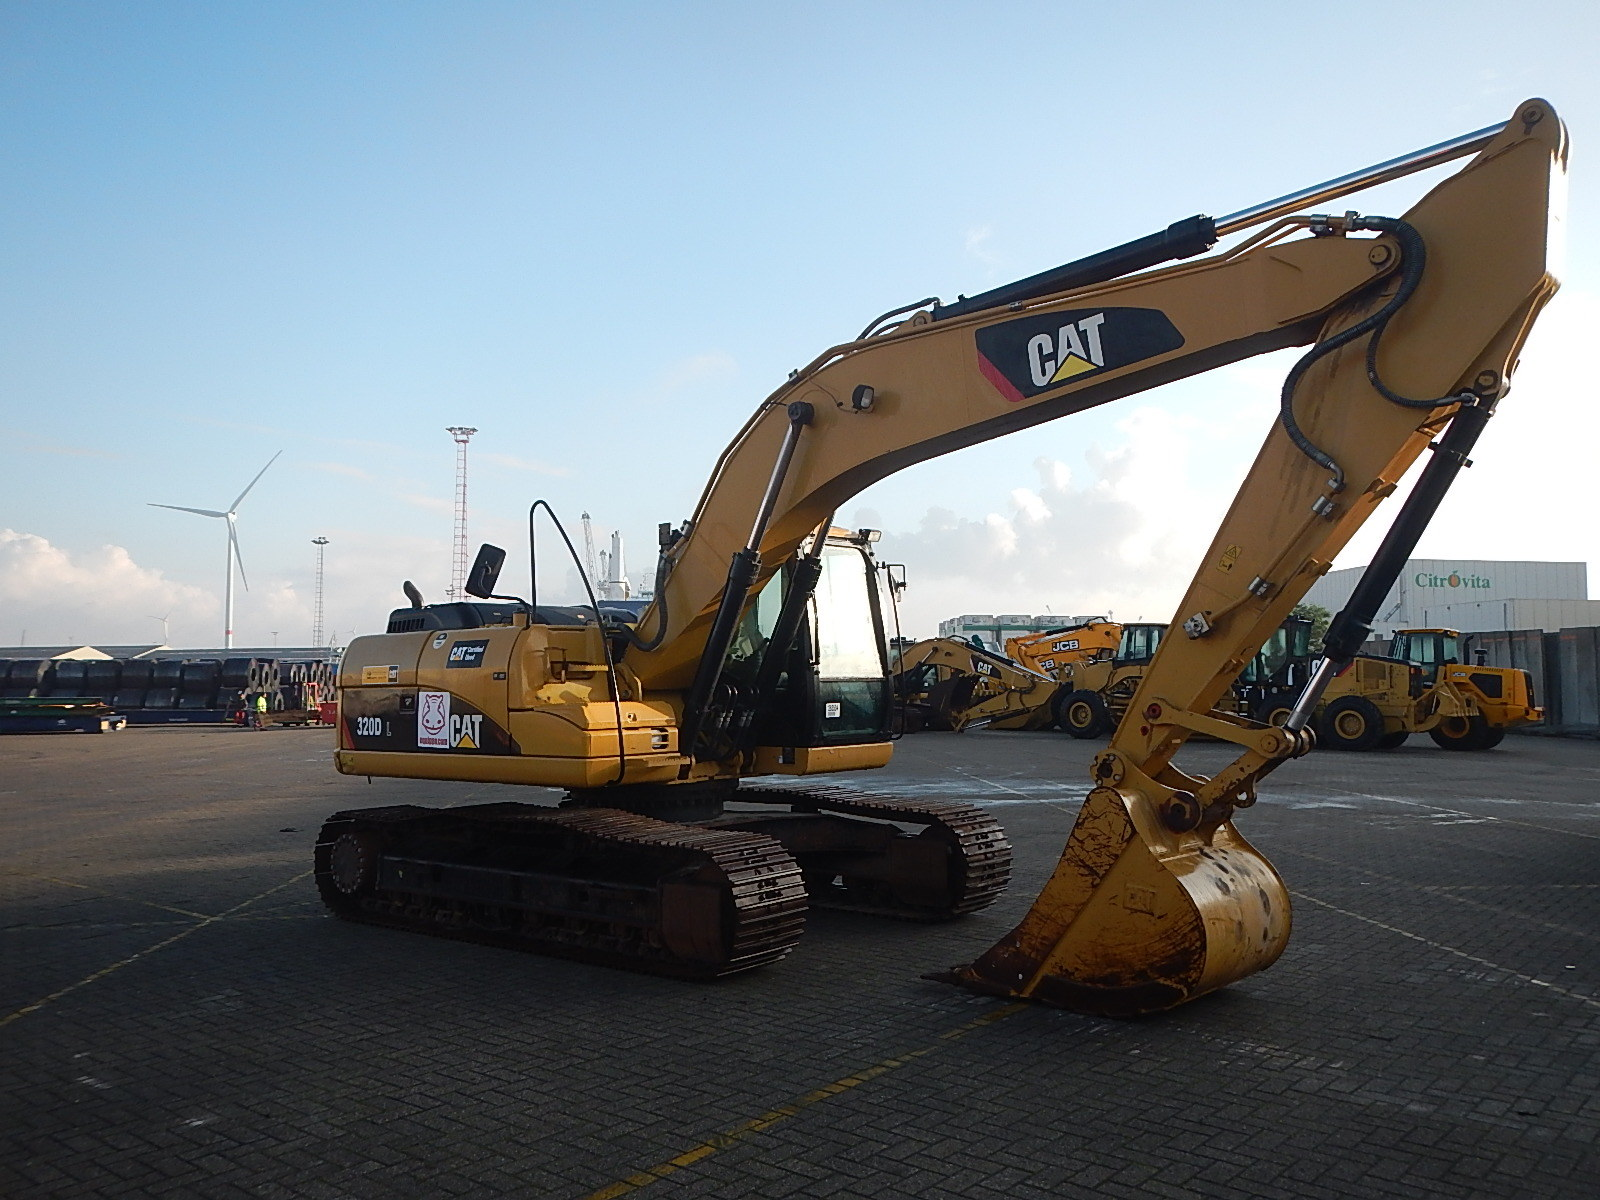 2013 - Caterpillar 320DL